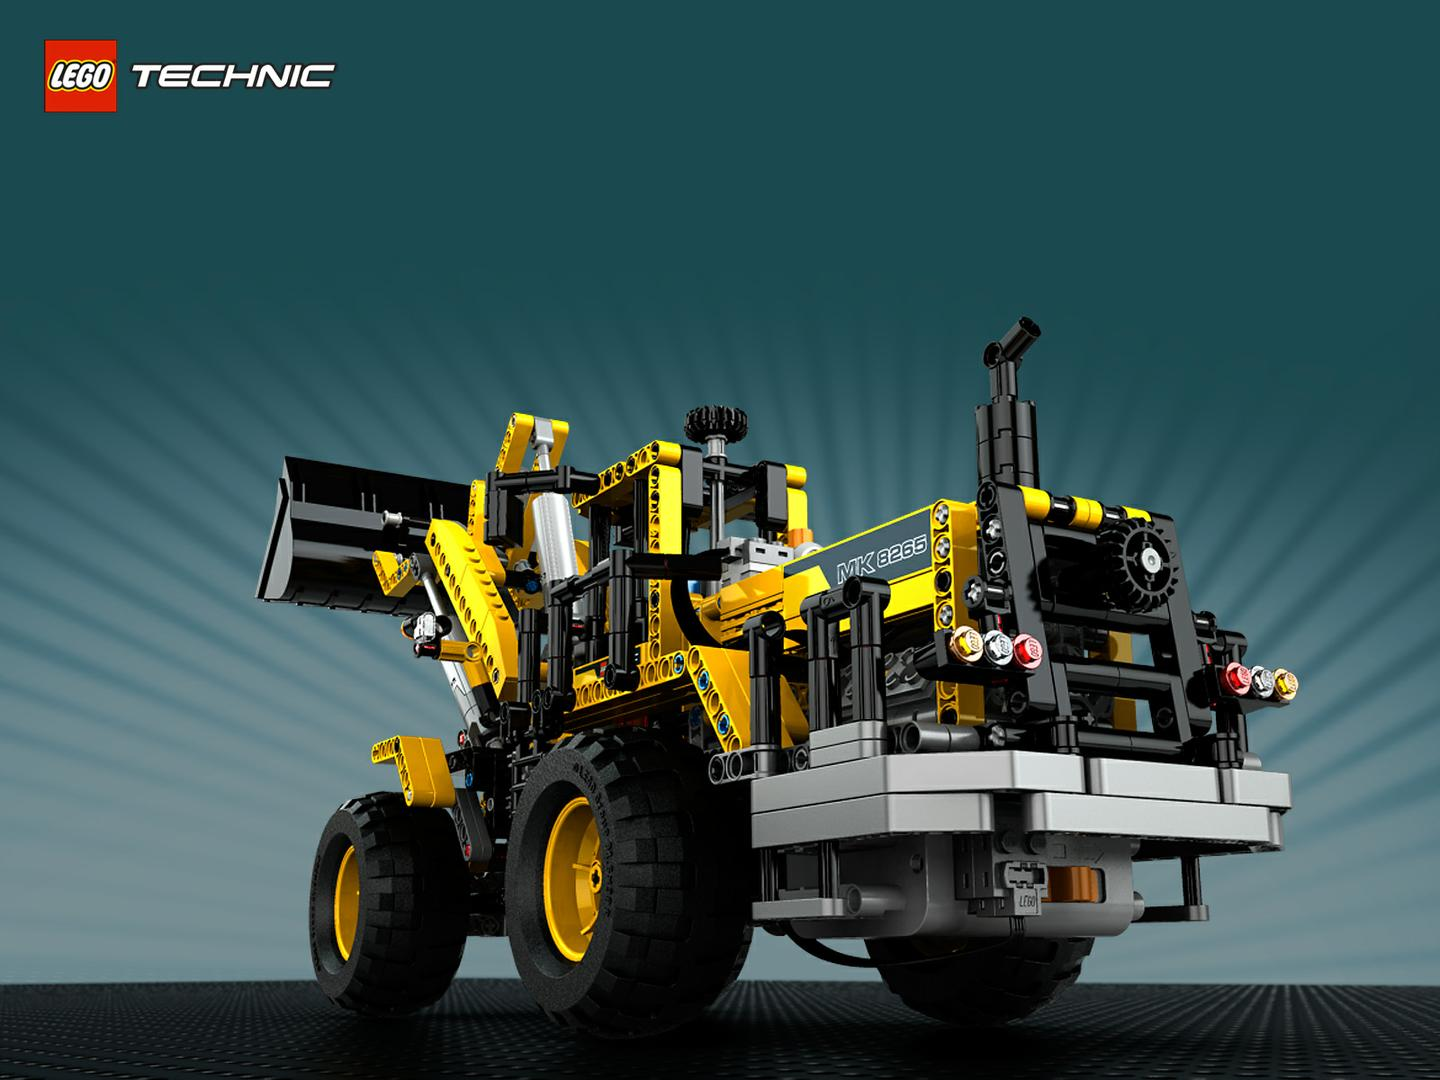 Wallpaper Hd 2017 Lego Technic Diverse